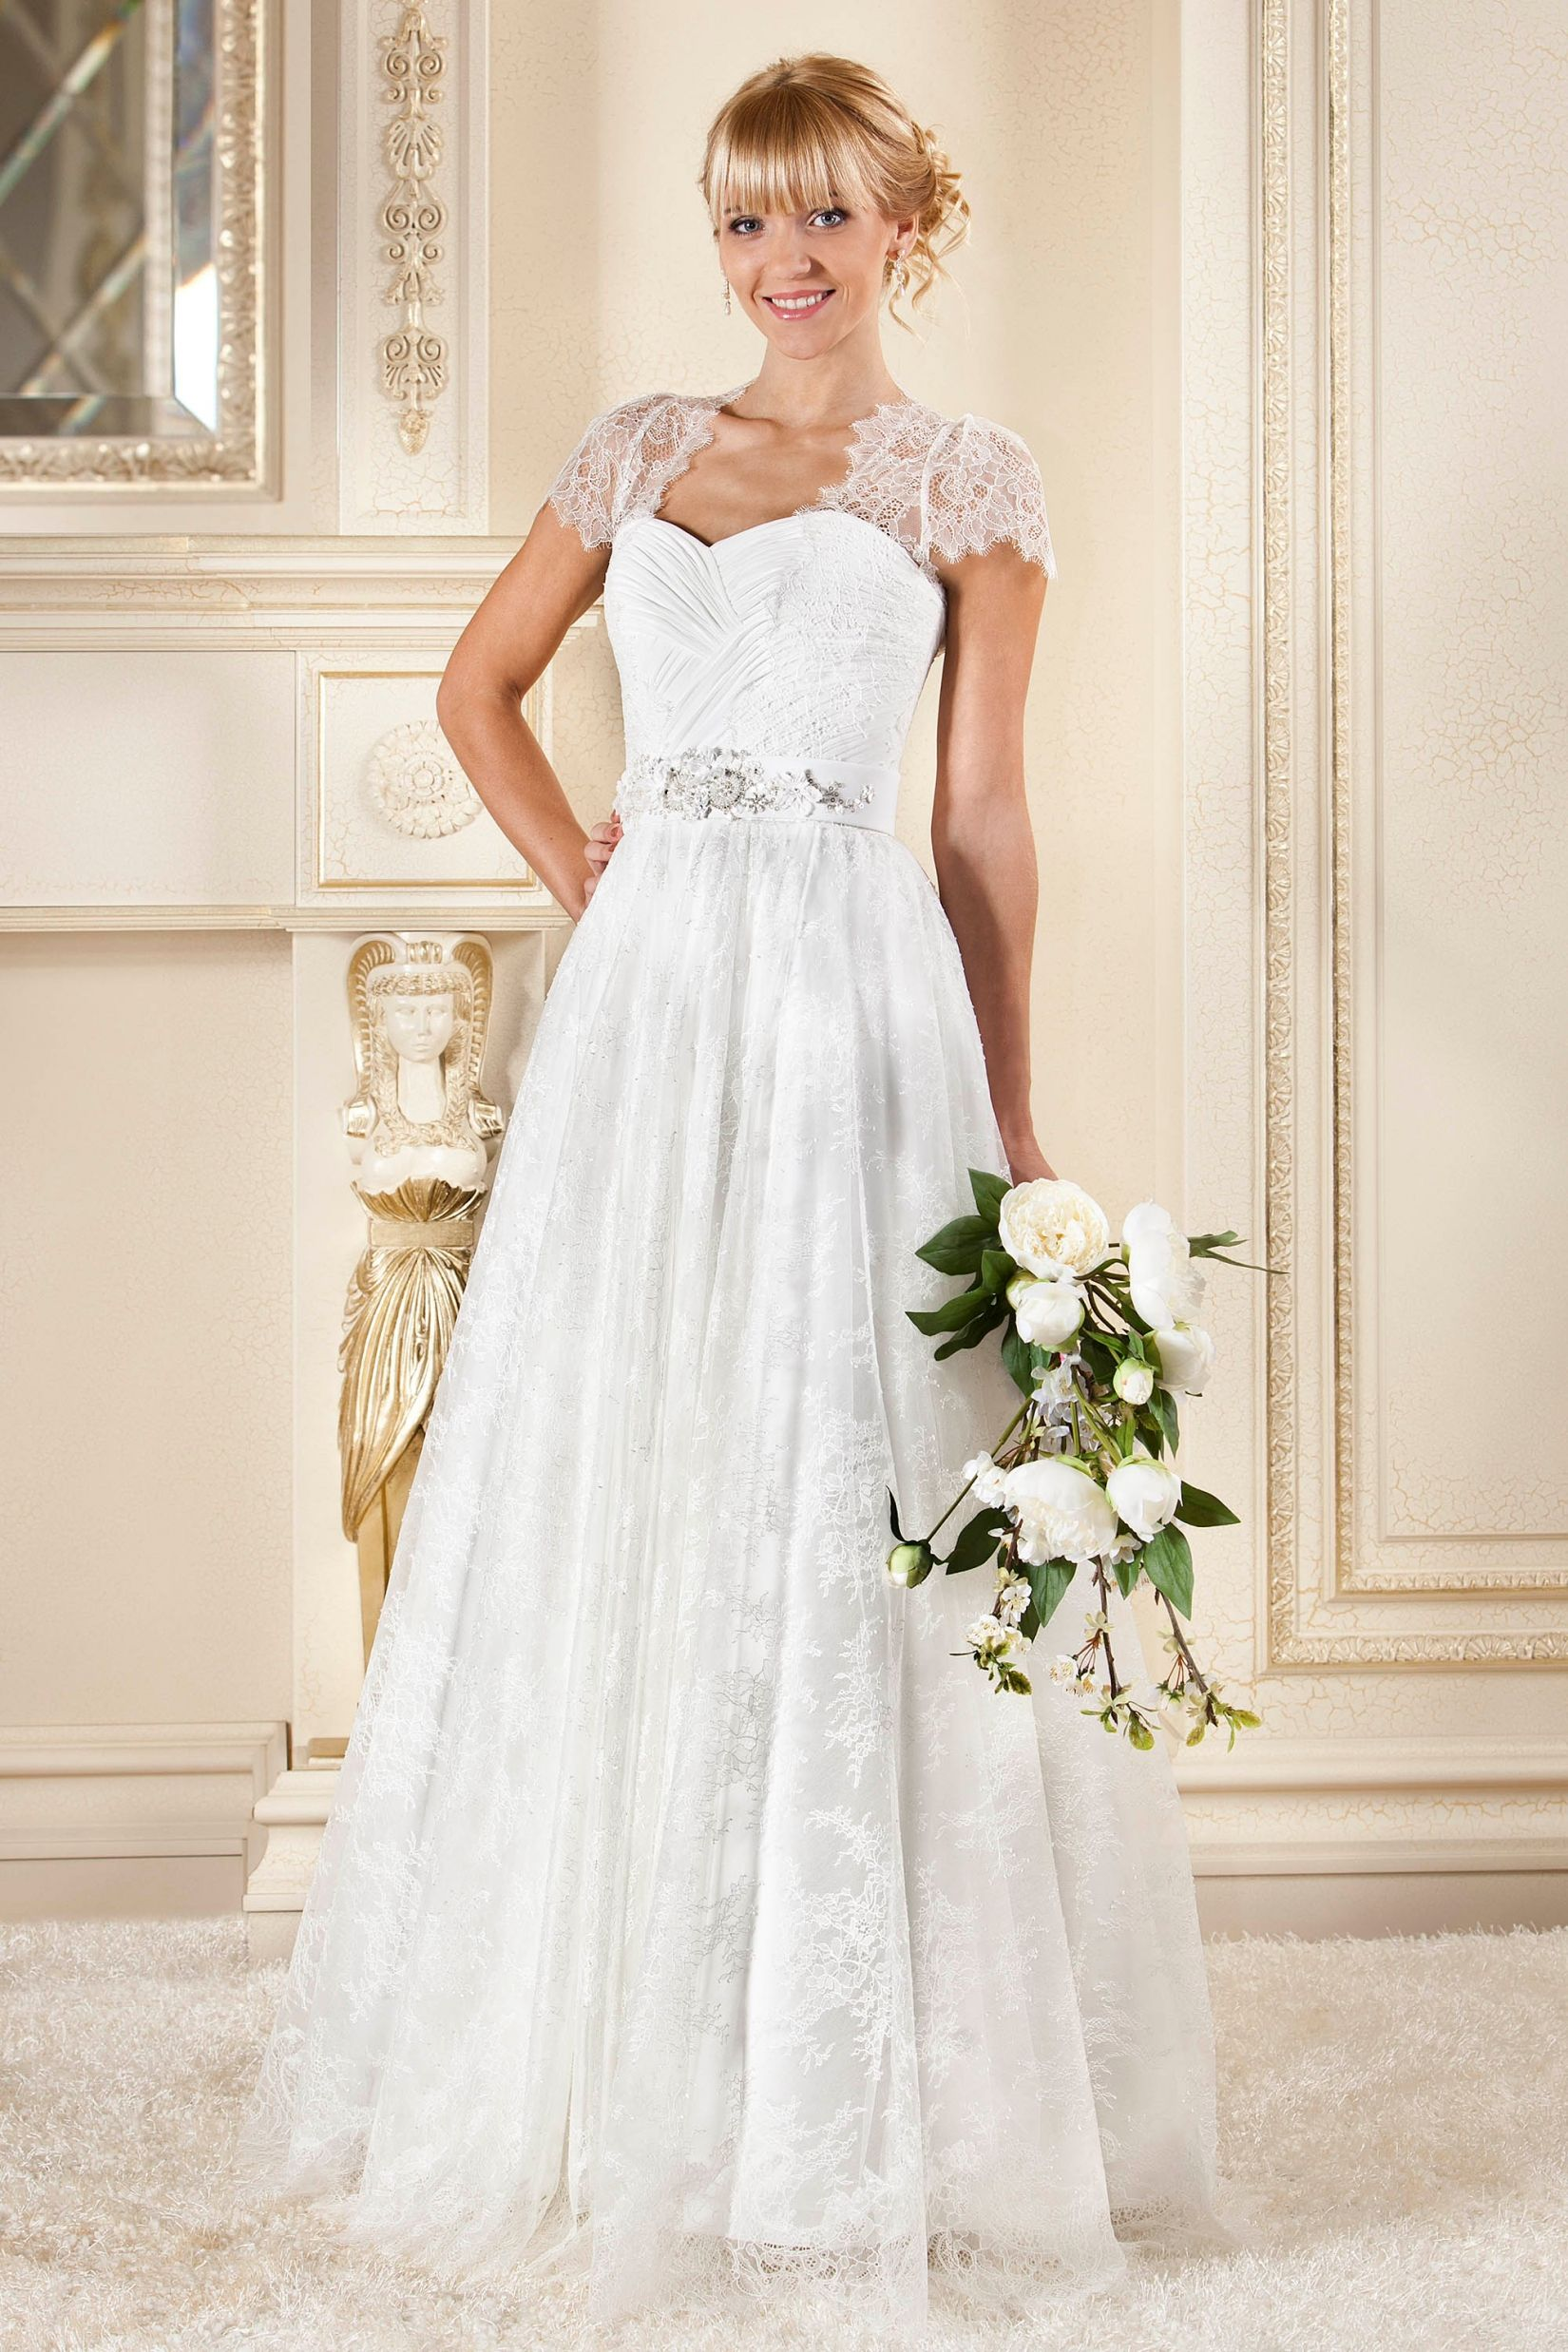 Designer wedding dress and bridal shop in london wedding dresses designer wedding dress and bridal shop in london wedding dresses collection secret passion ombrellifo Image collections